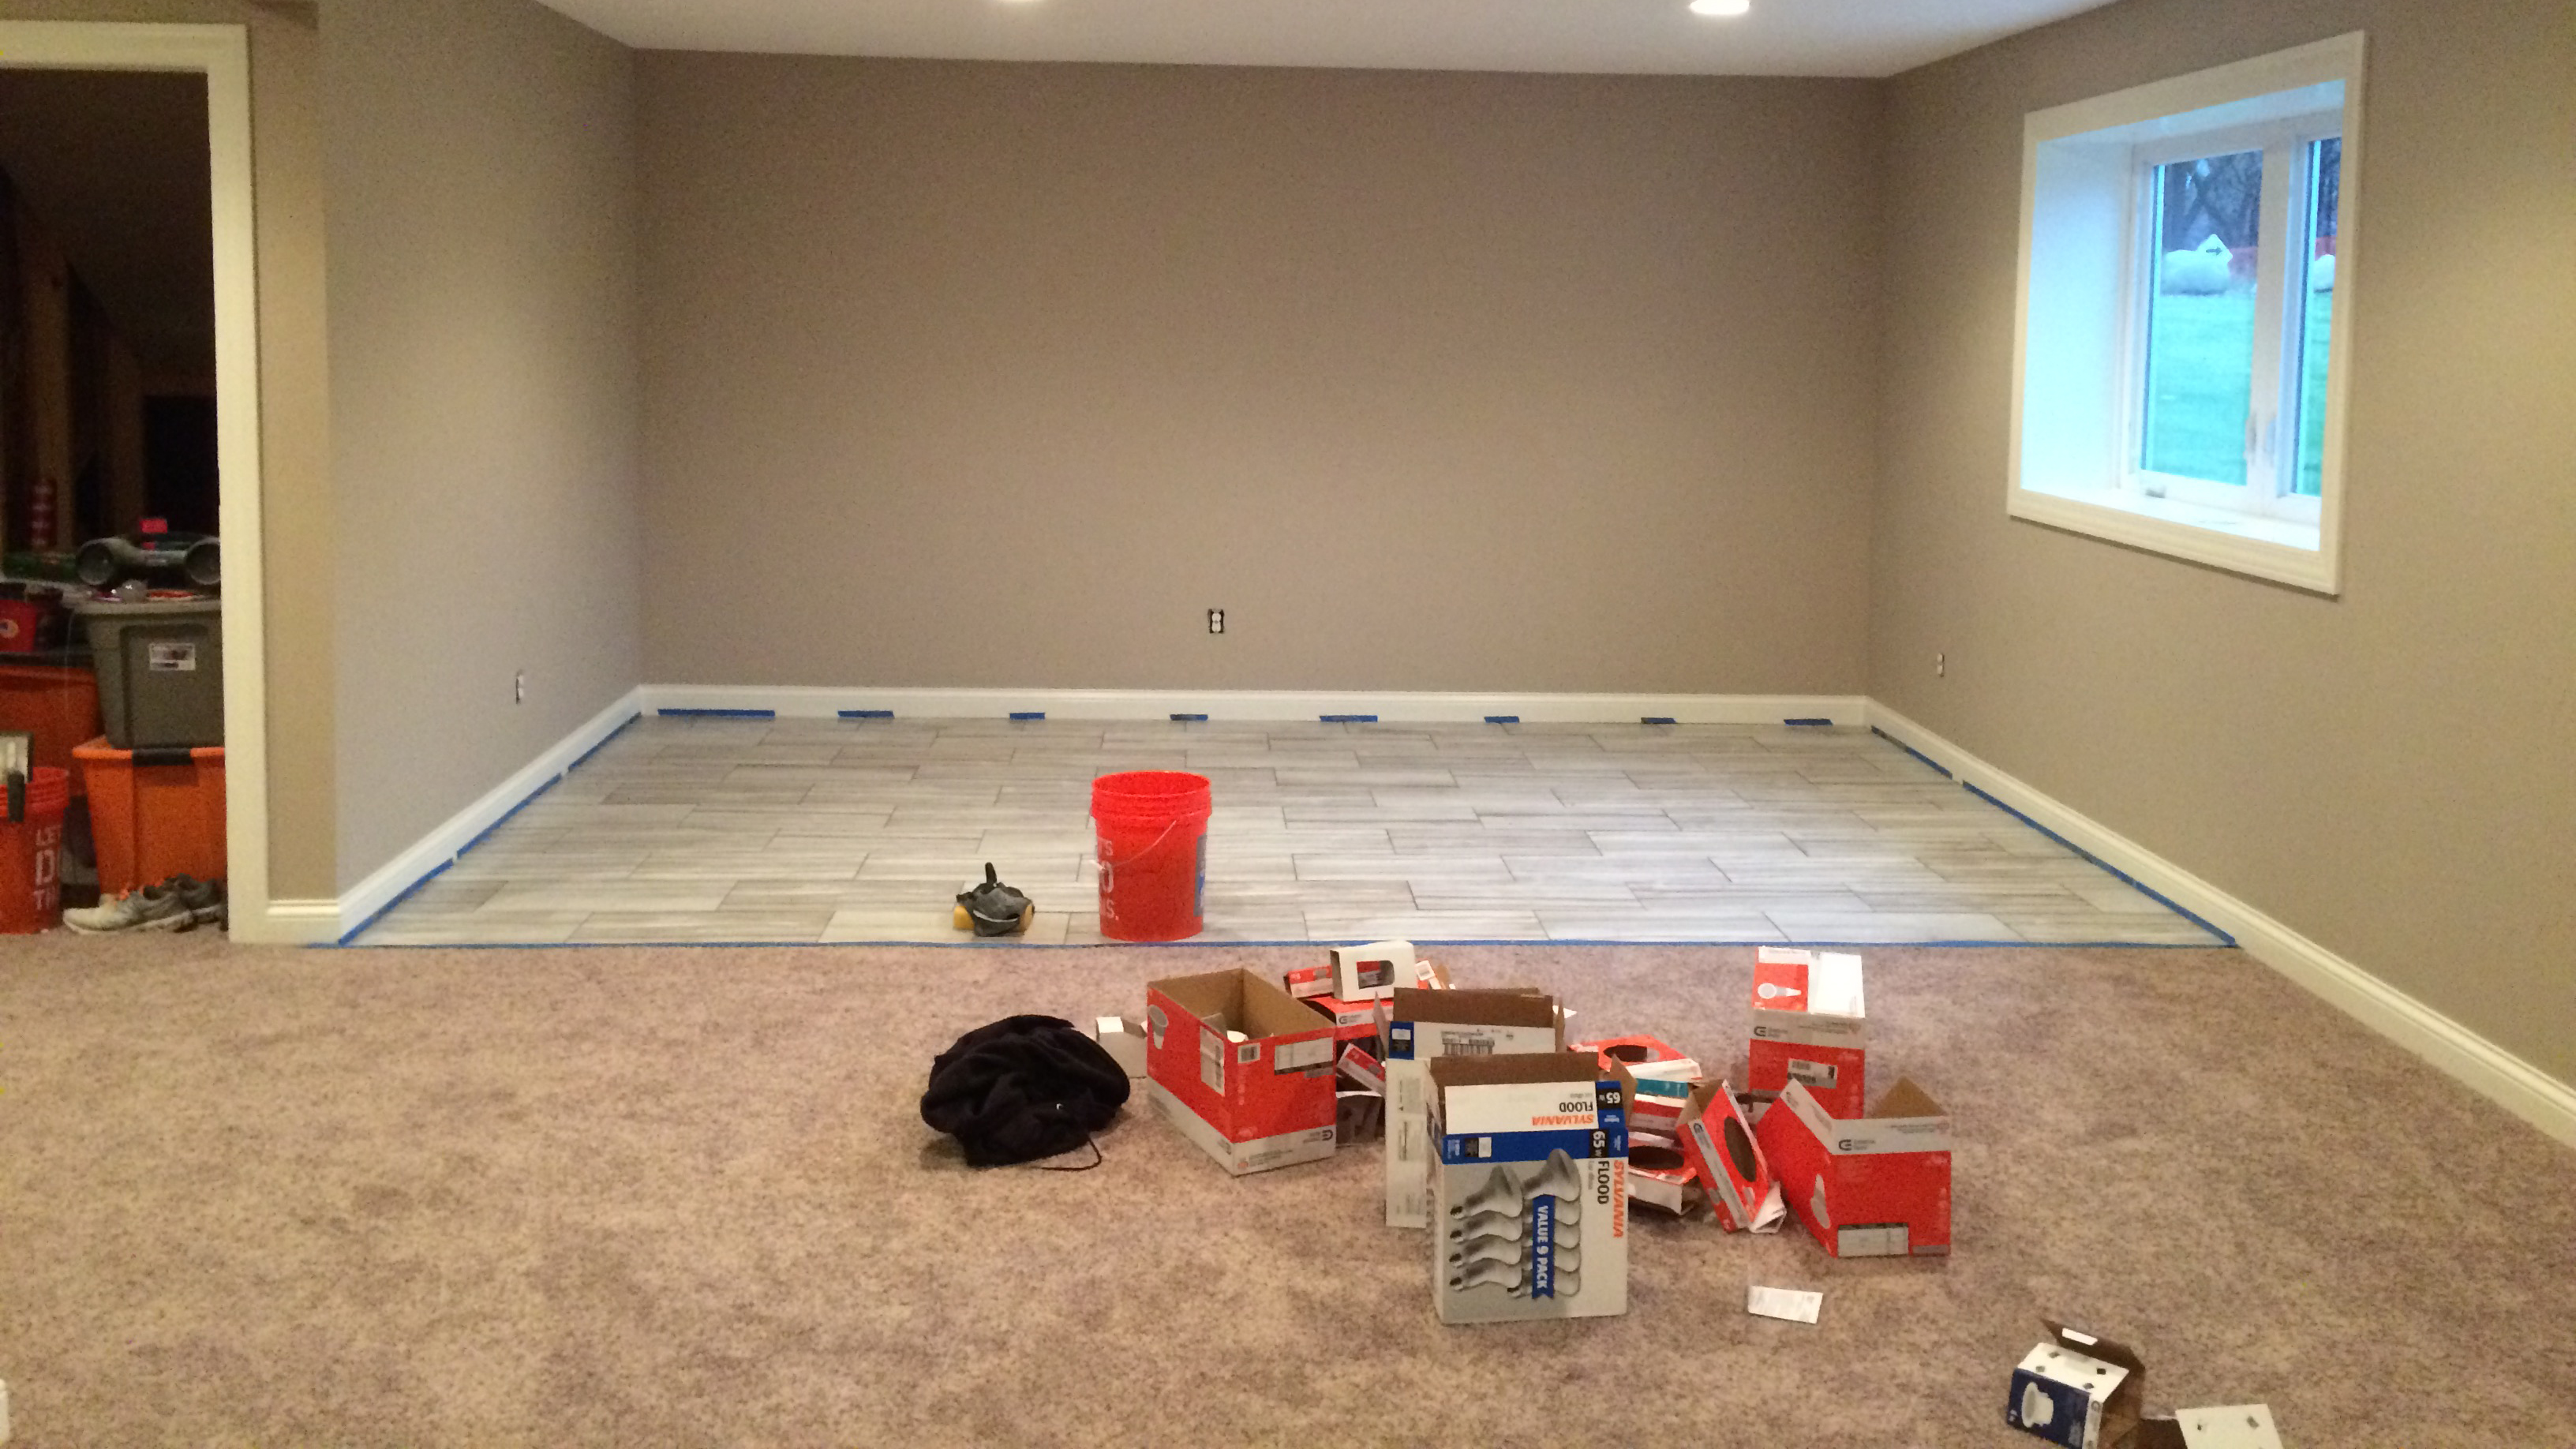 Best Way To Remove Construction Dust After Renovation (5 Top Steps) 1